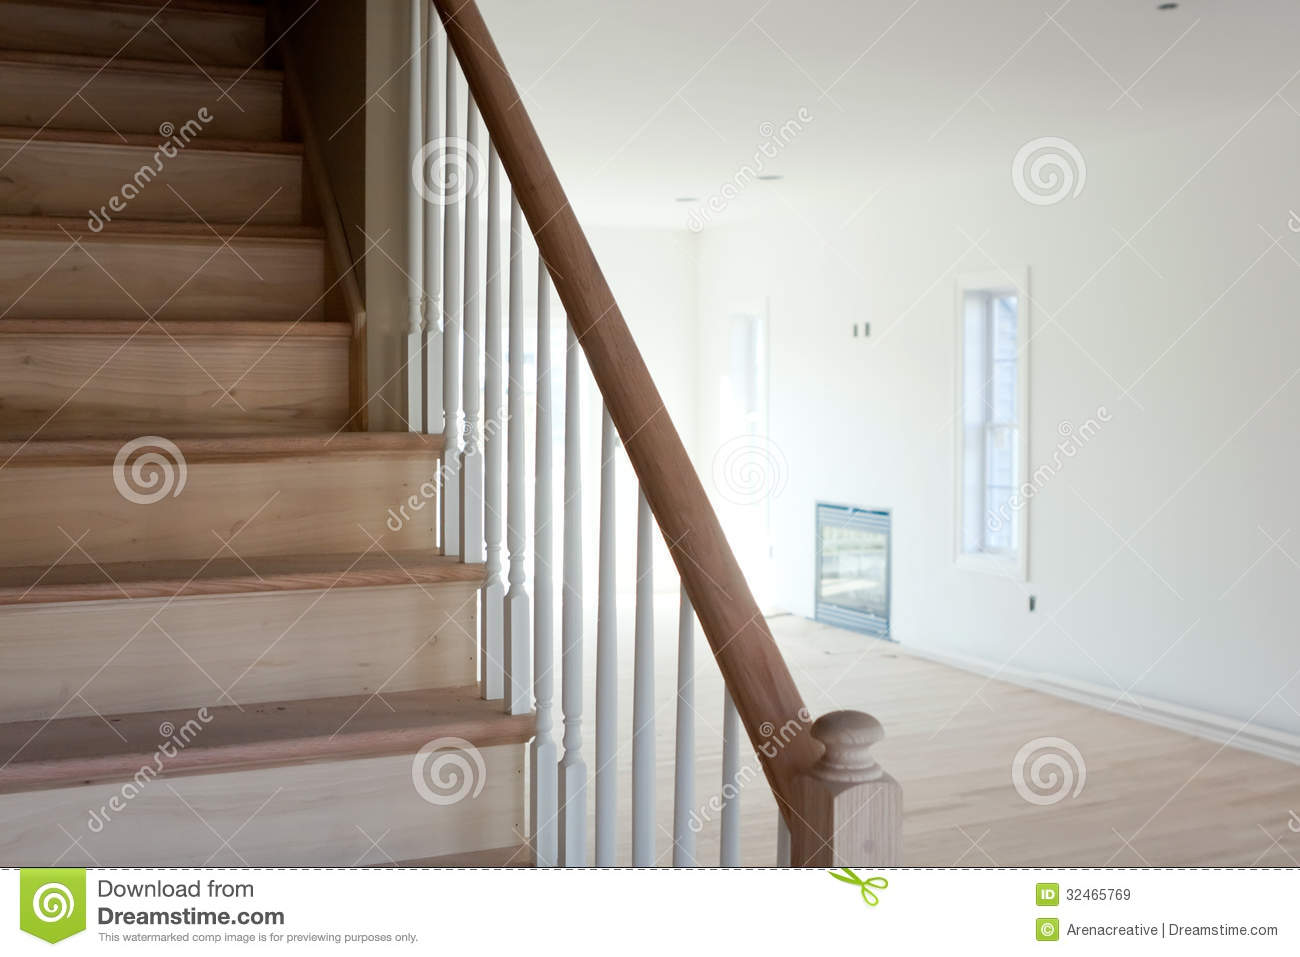 Unfinished stairs home interior royalty free stock images - Interior stair railing contractors ...